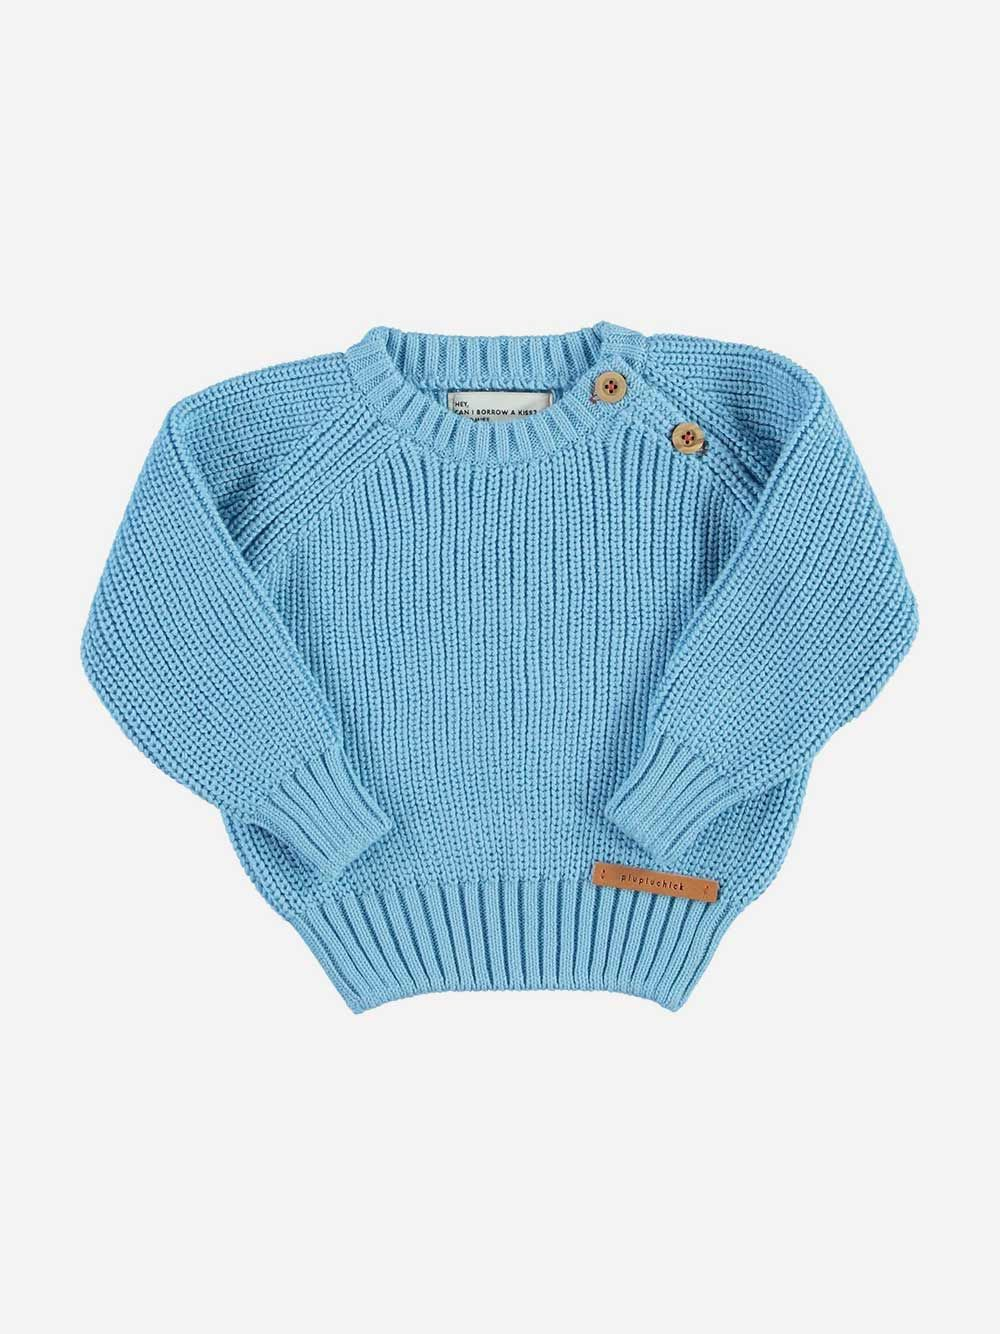 Baby Knitted Sweater Blue with Garnet